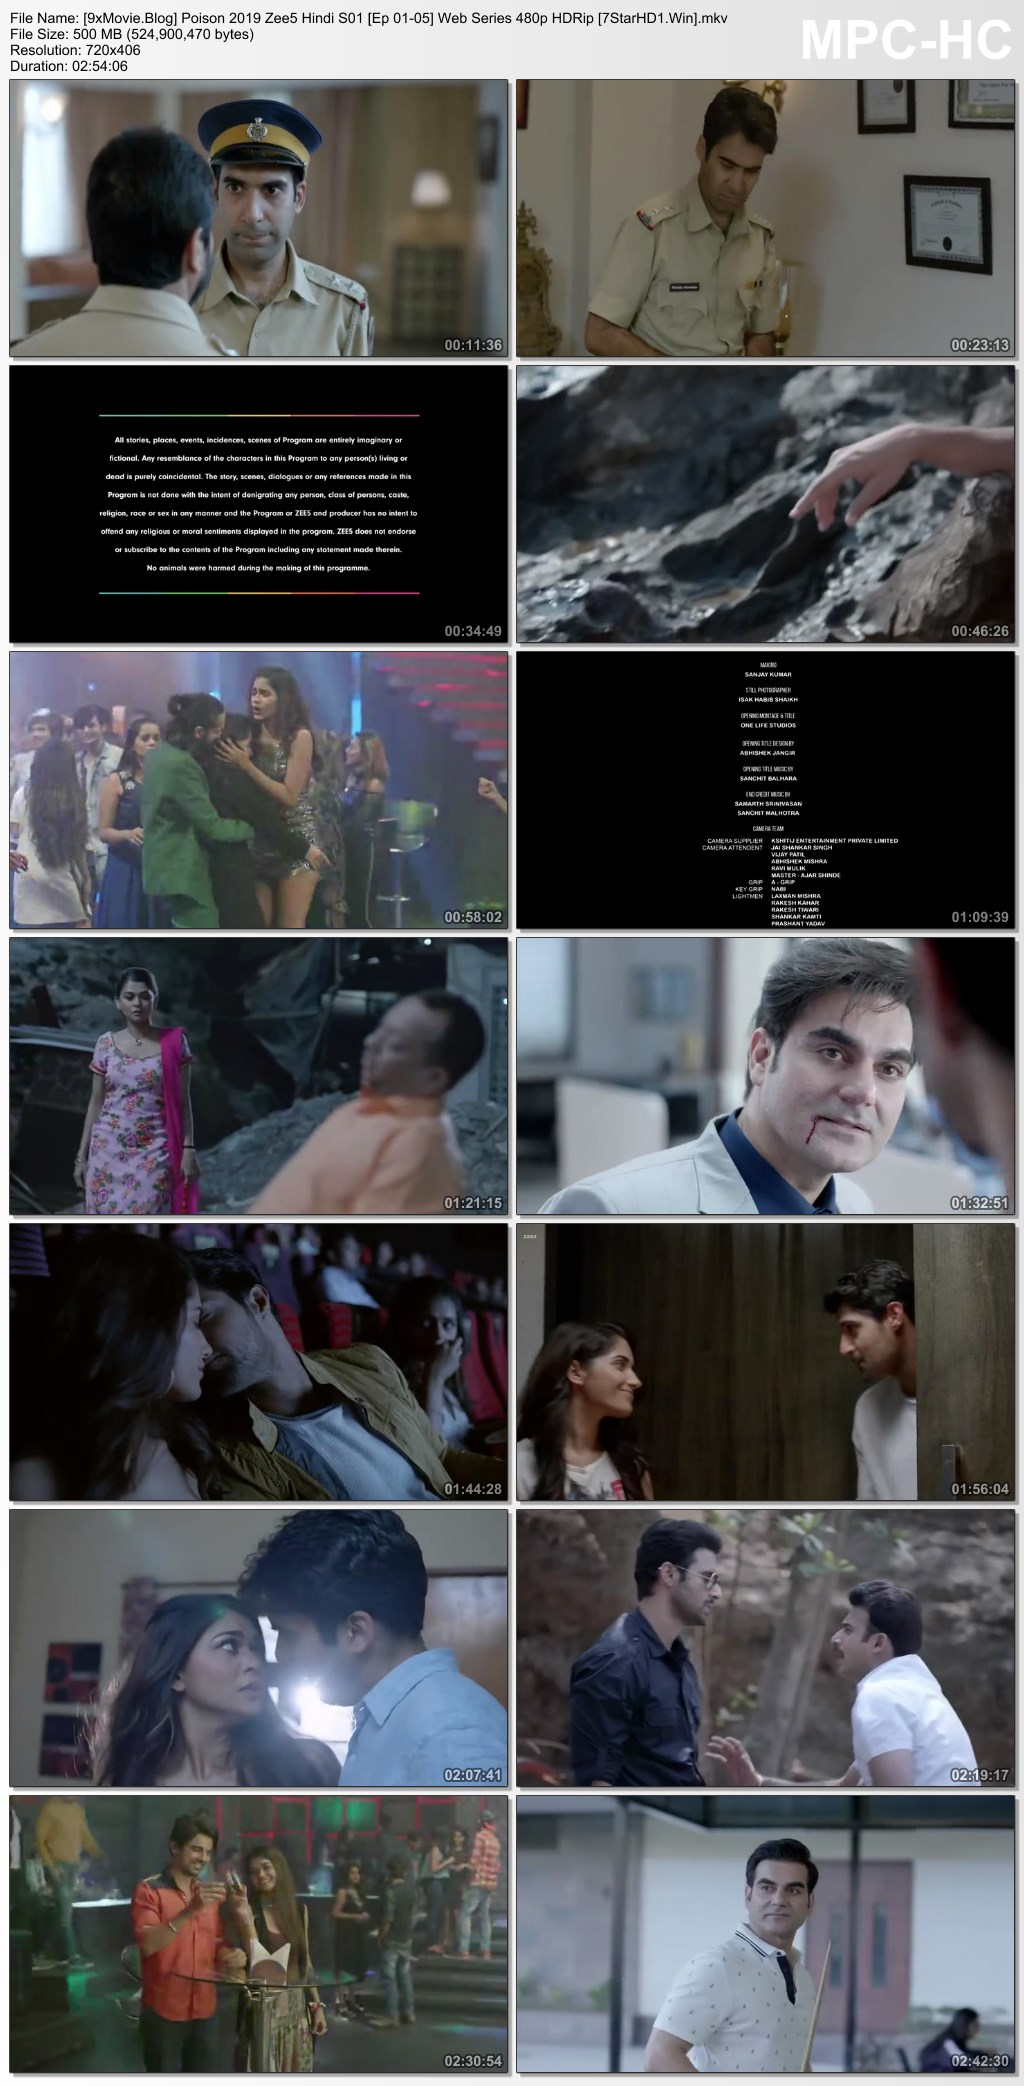 Poison 2019 Zee5 Hindi S01 Web Series 480p HDRip x264 1.2GB ESubs